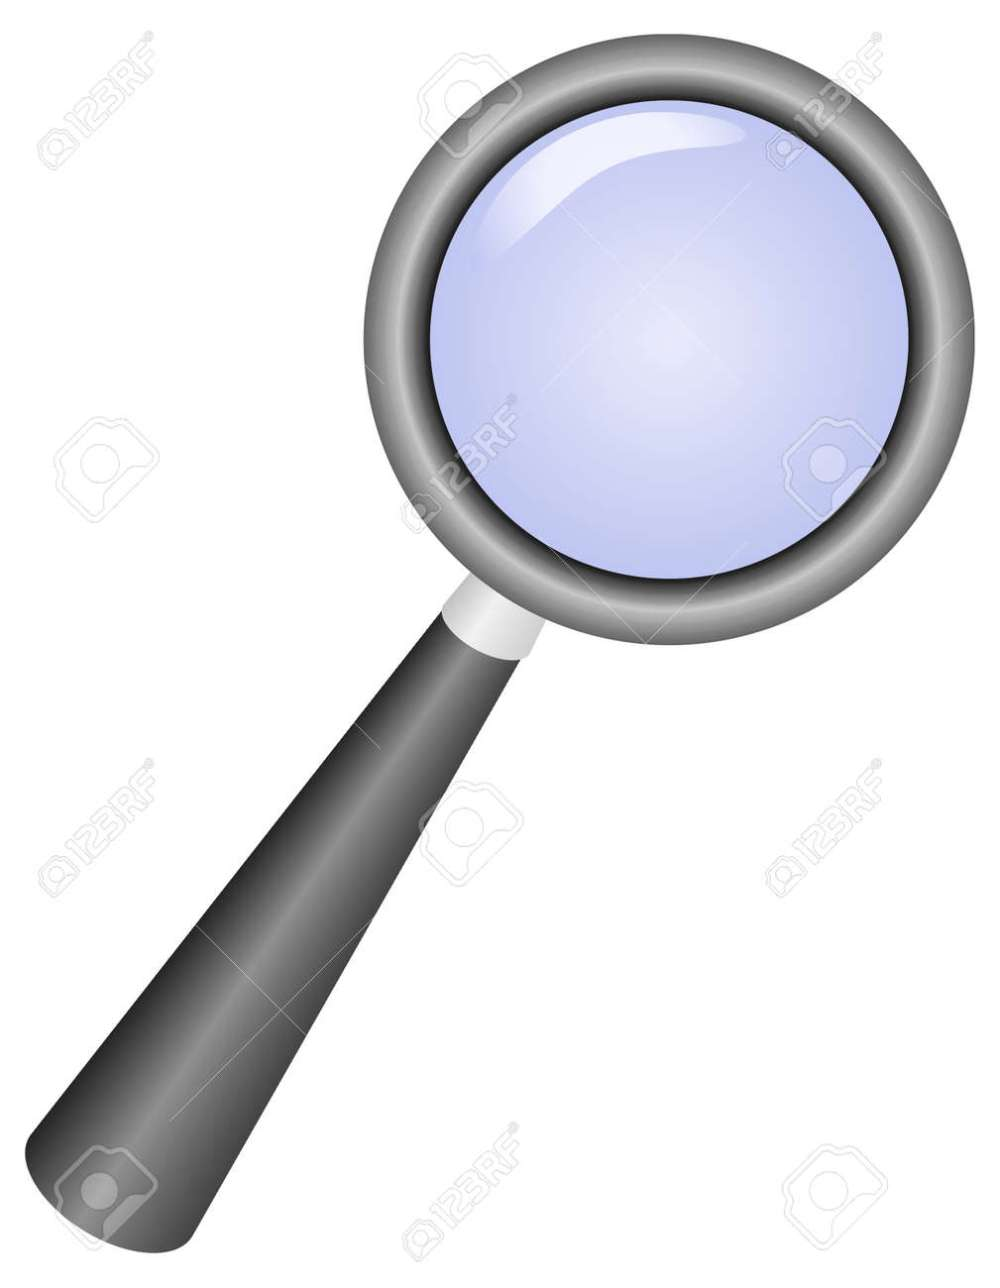 medium resolution of magnifying glass icon vector illustration stock vector 8911932